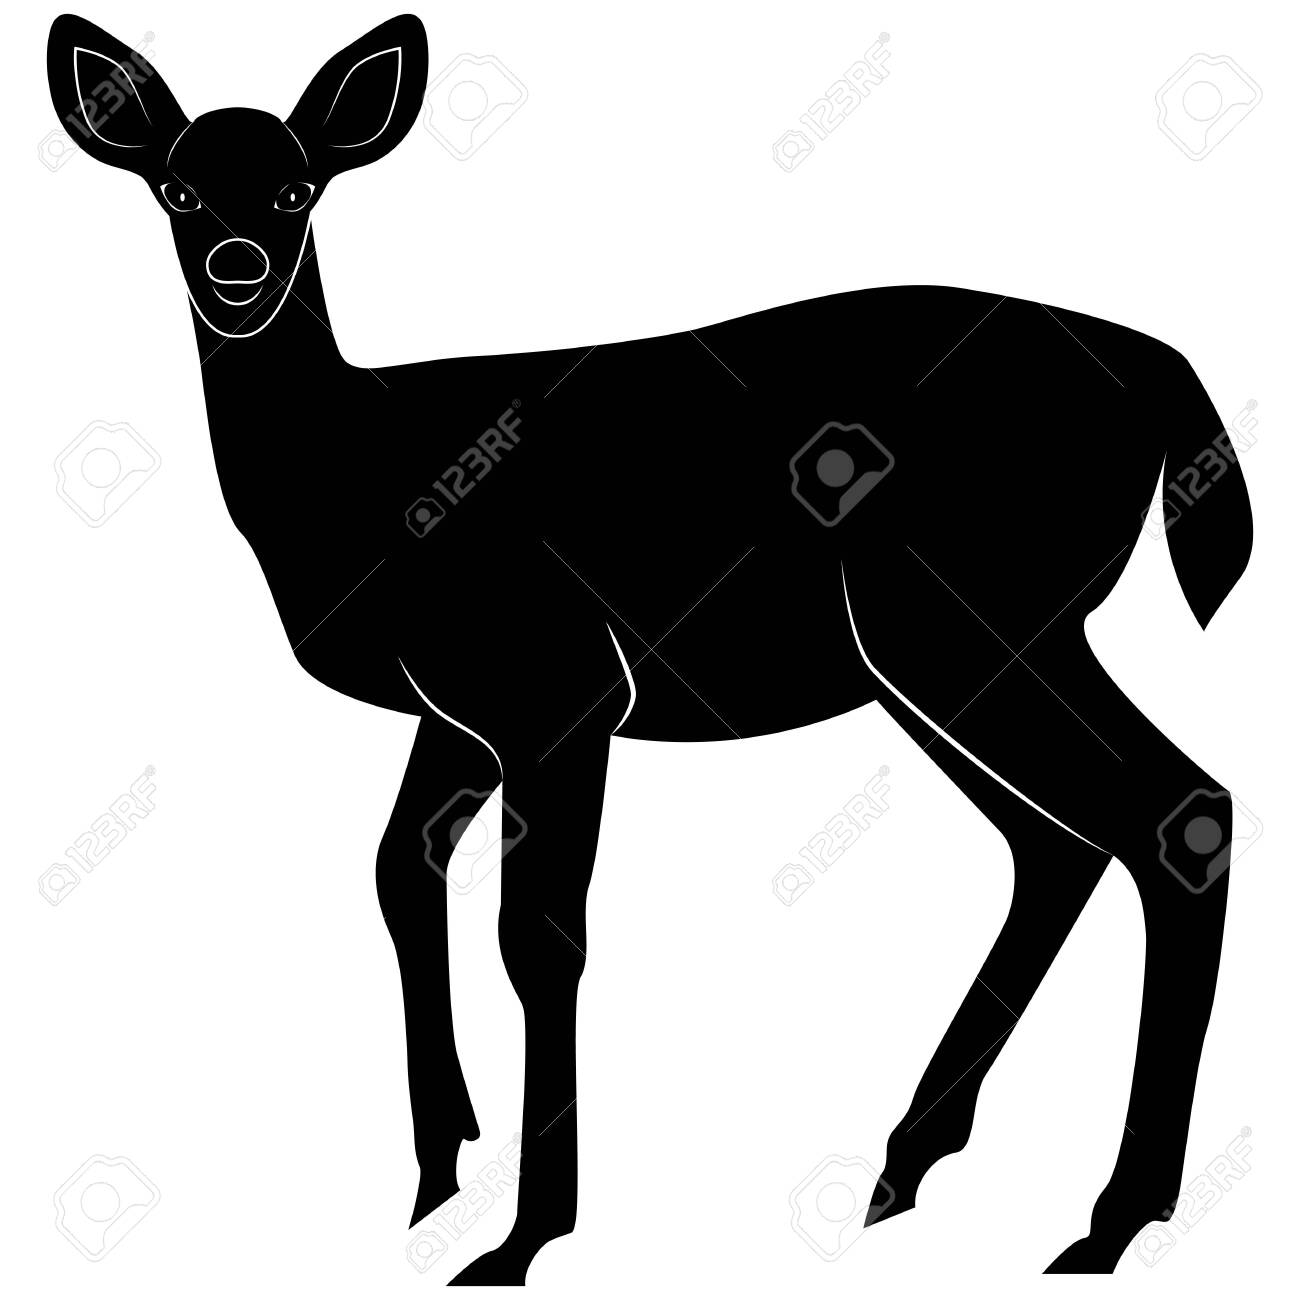 Vector image of a silhouette fallow deer for retro logos, emblems, badges, labels template vintage design element. Isolated on white background - 122177509